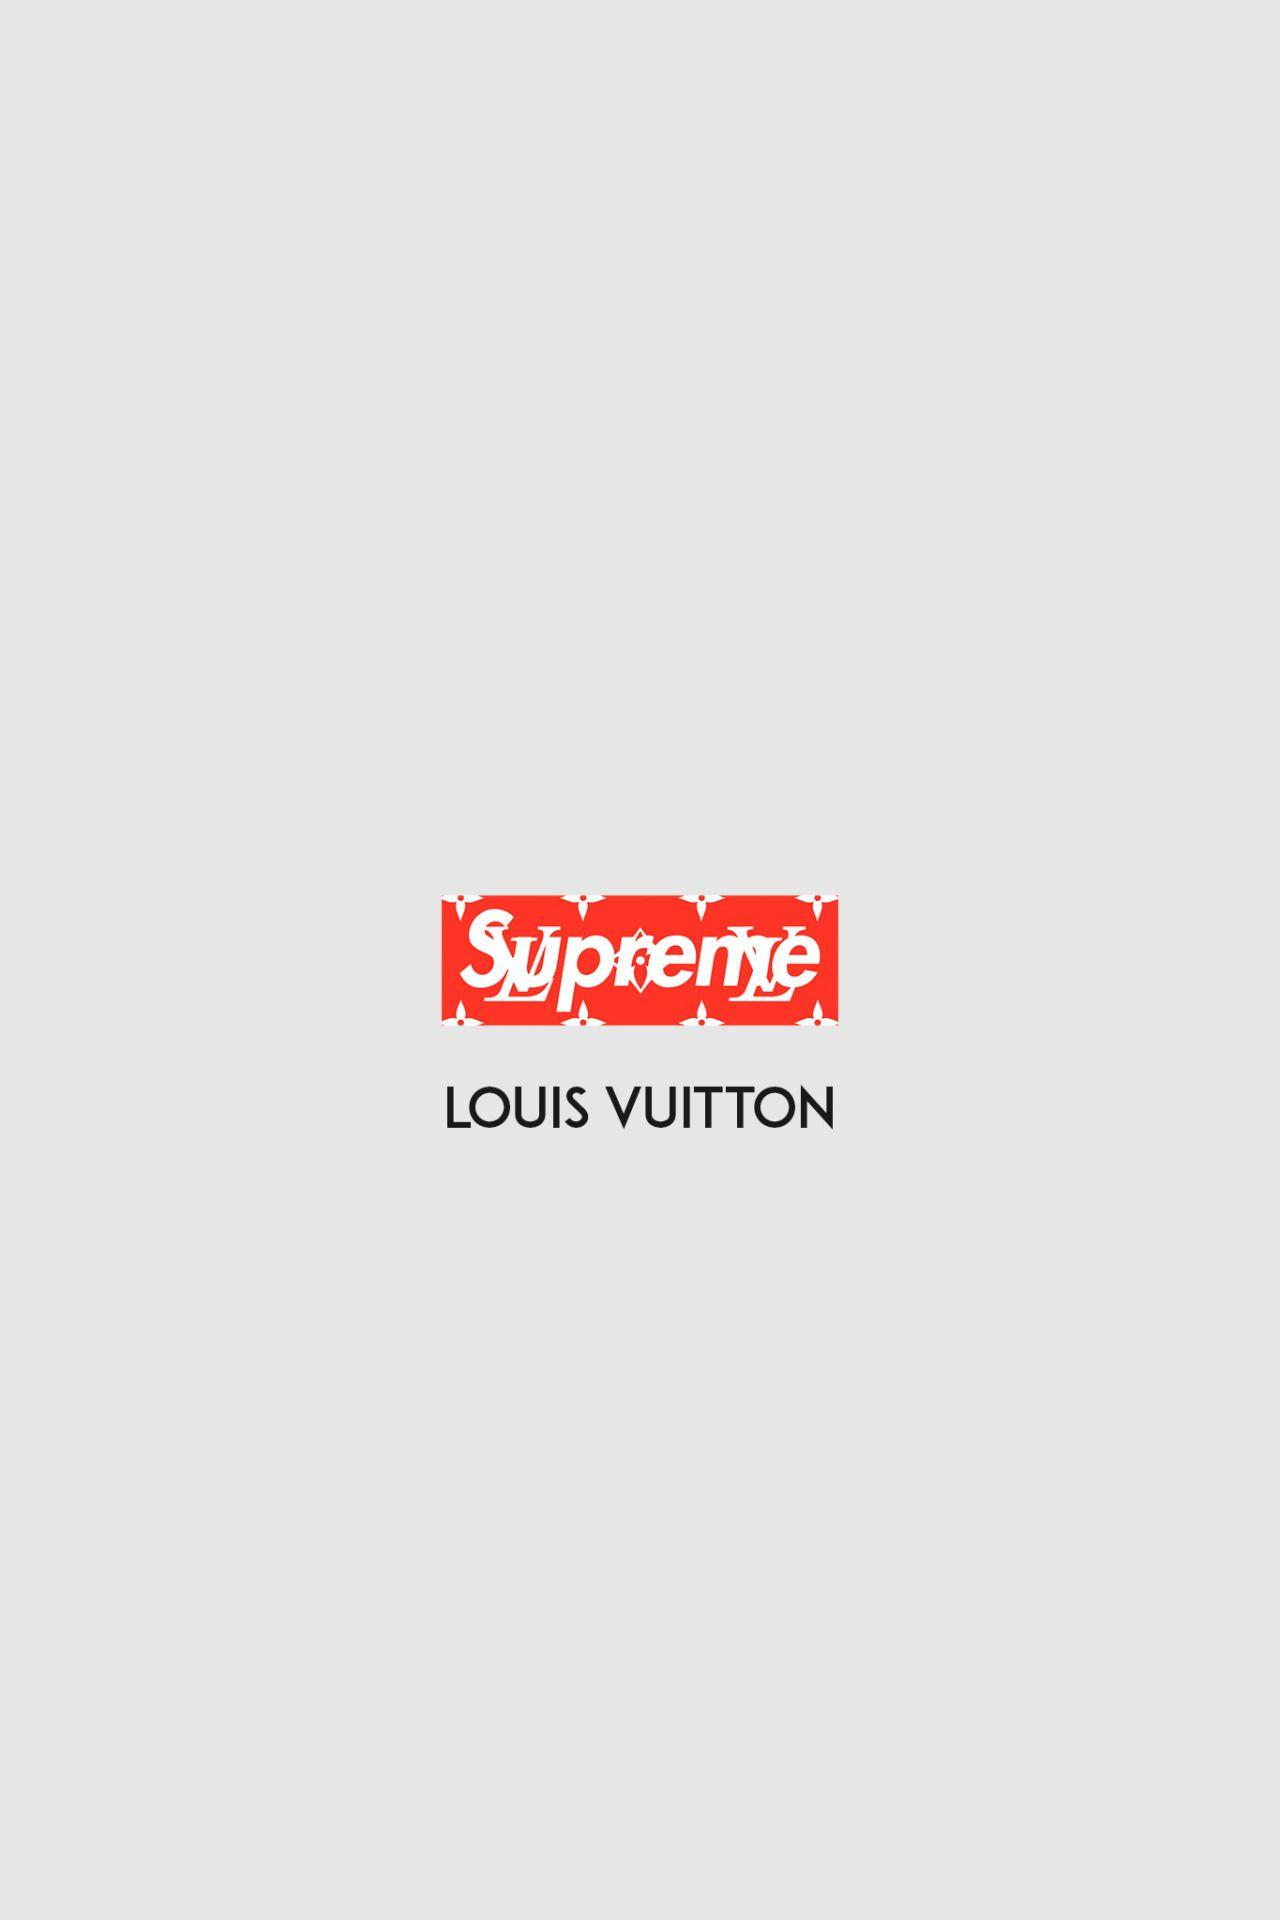 Supreme White Wallpaper : supreme, white, wallpaper, Supreme, Louis, Vuitton, White, Wallpapers, Wallpaper